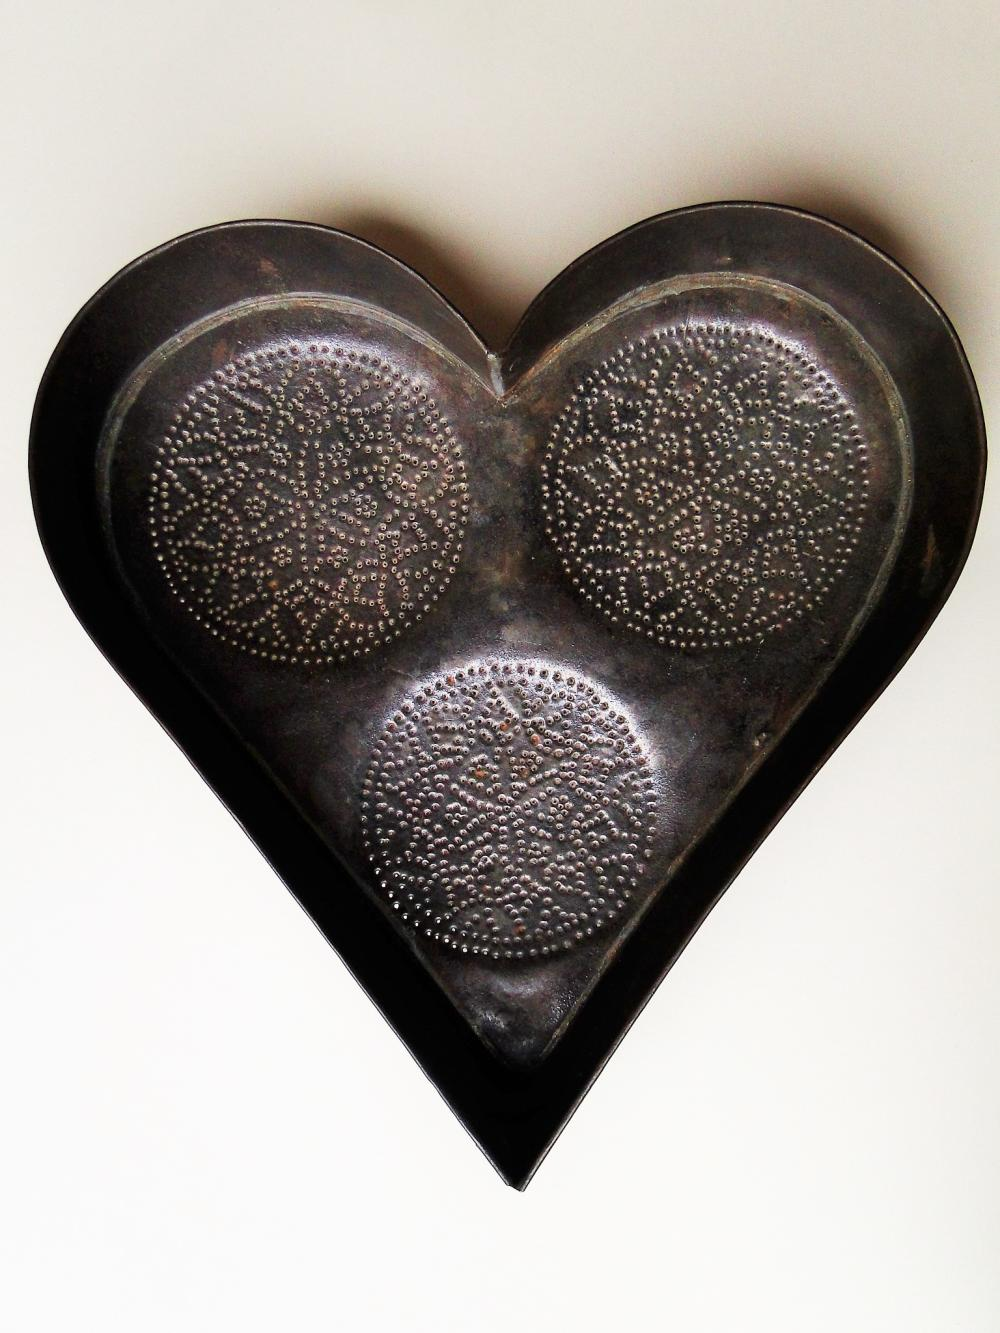 19TH C HEART FORM CHEESE STRAINER